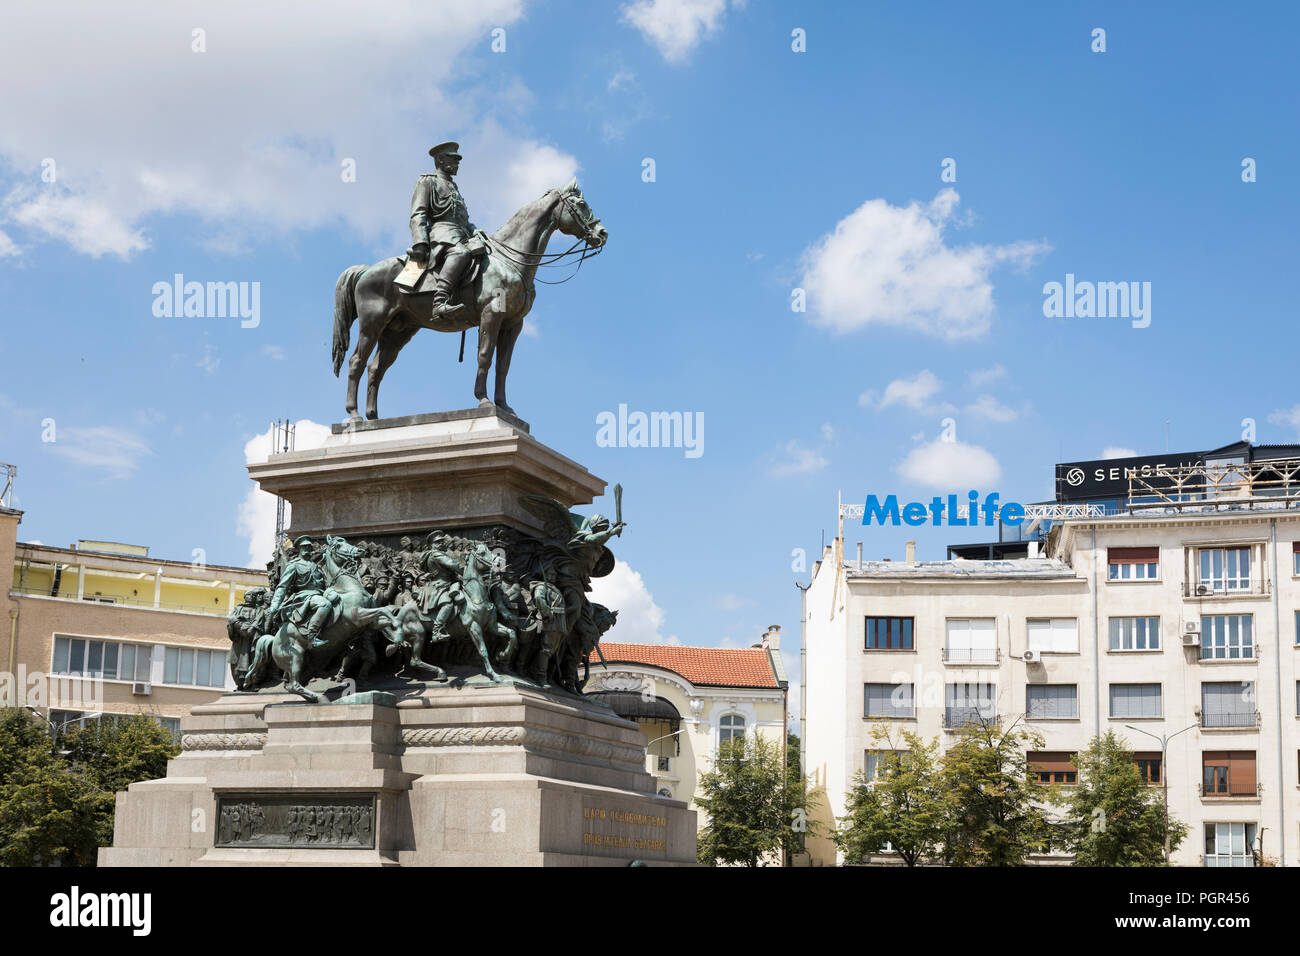 Statue of tsar Alexander II who liberated the country of the Turkish Ottoman Empire enslavement in1878, Sofia, Bulgaria - Stock Image